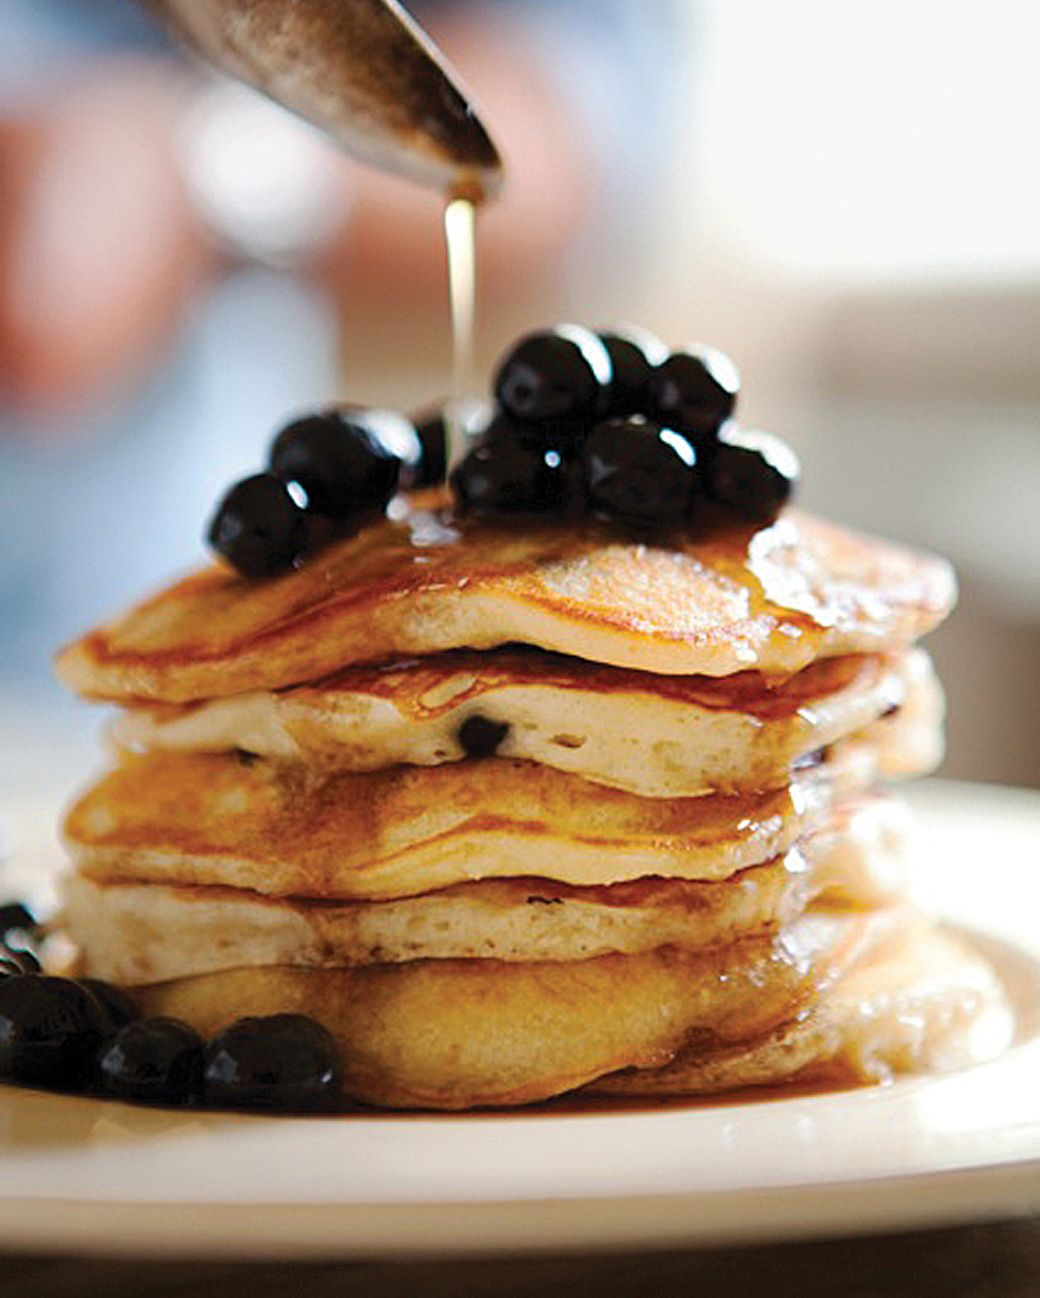 Buttermilk Blueberry Pancakes Recipe Blueberry Buttermilk Pancakes Blueberry Pancakes Breakfast Brunch Recipes